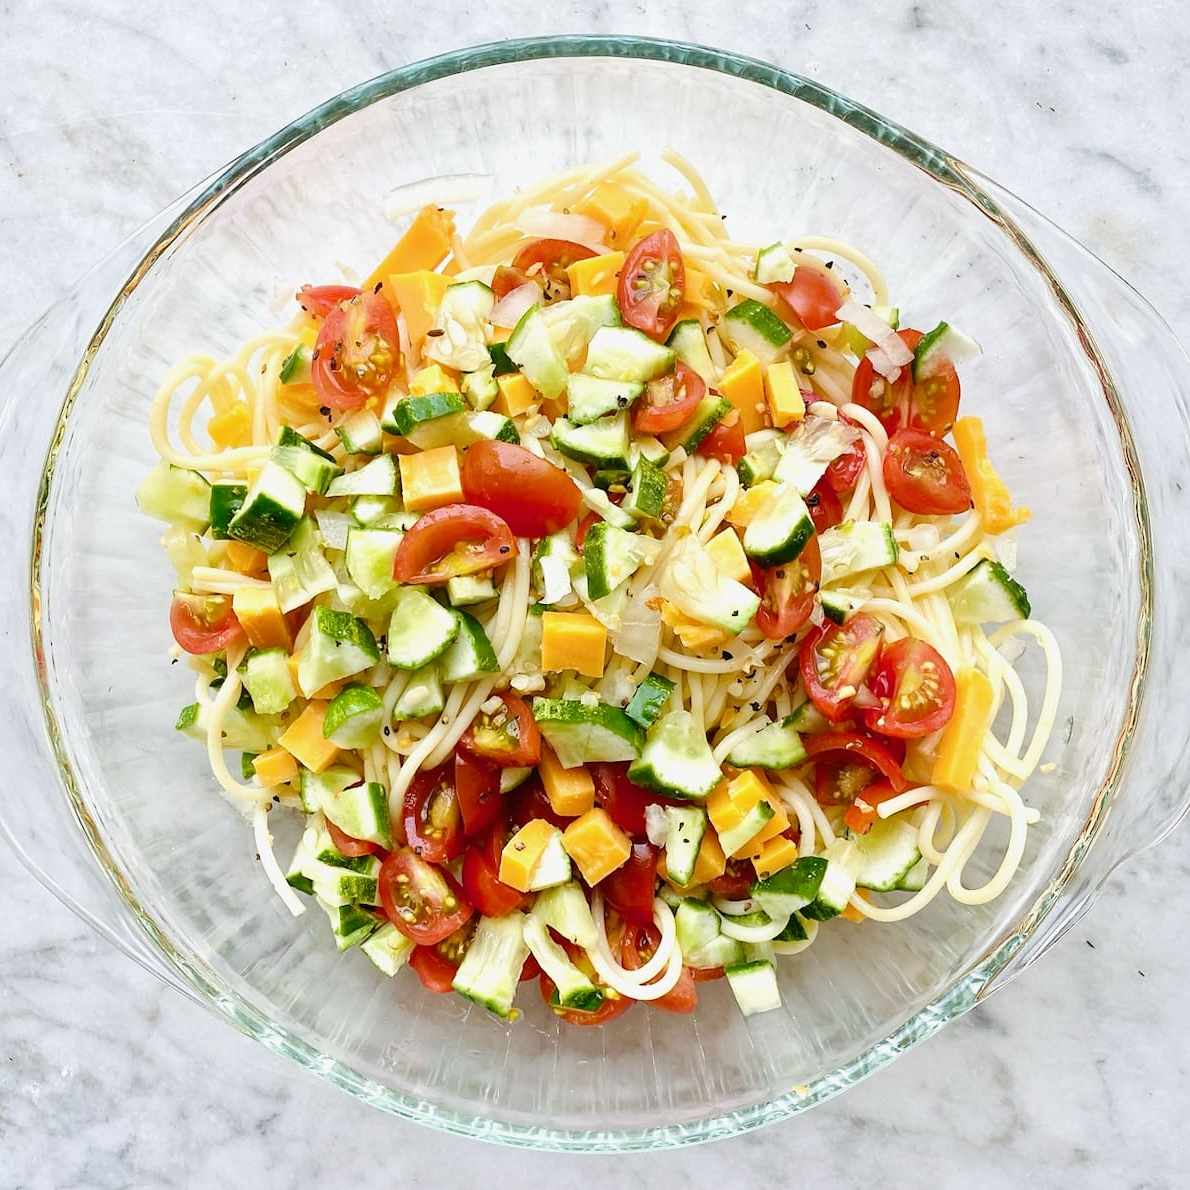 fresh tomatoes, cucumbers, onions and olives on top of spaghetti pasta in a clear bowl